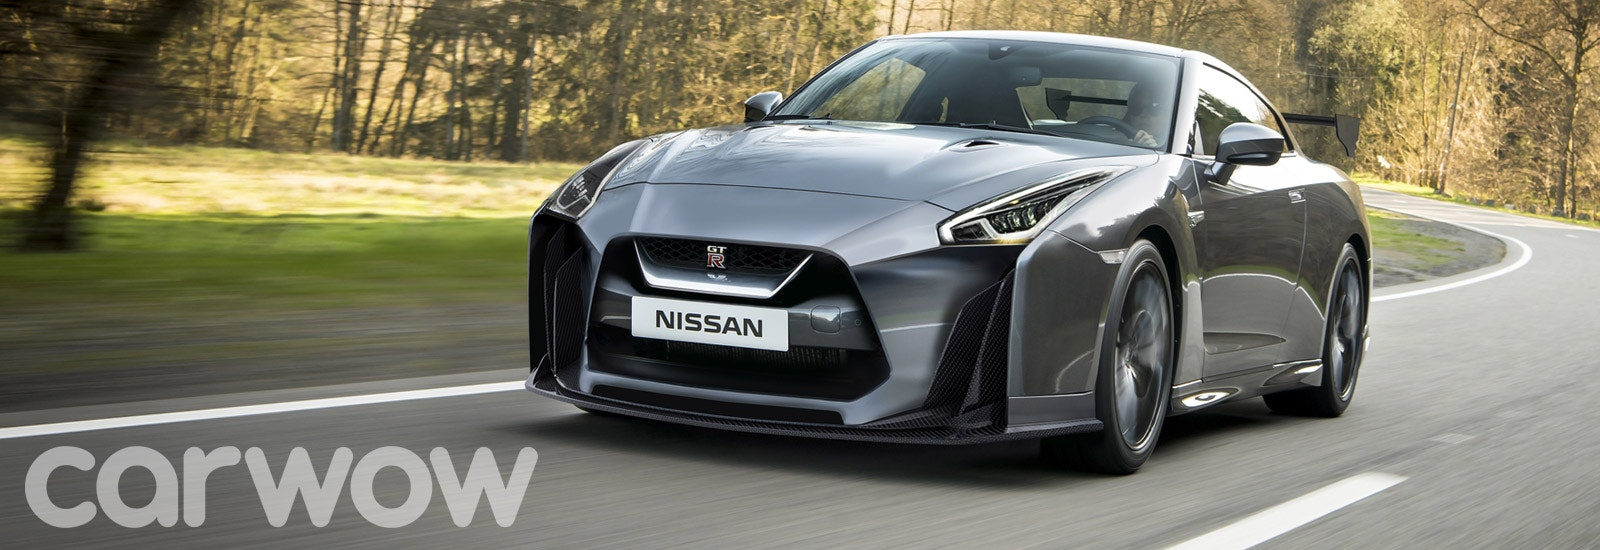 Nissan GT-R R36 Skyline price specs release date | carwow